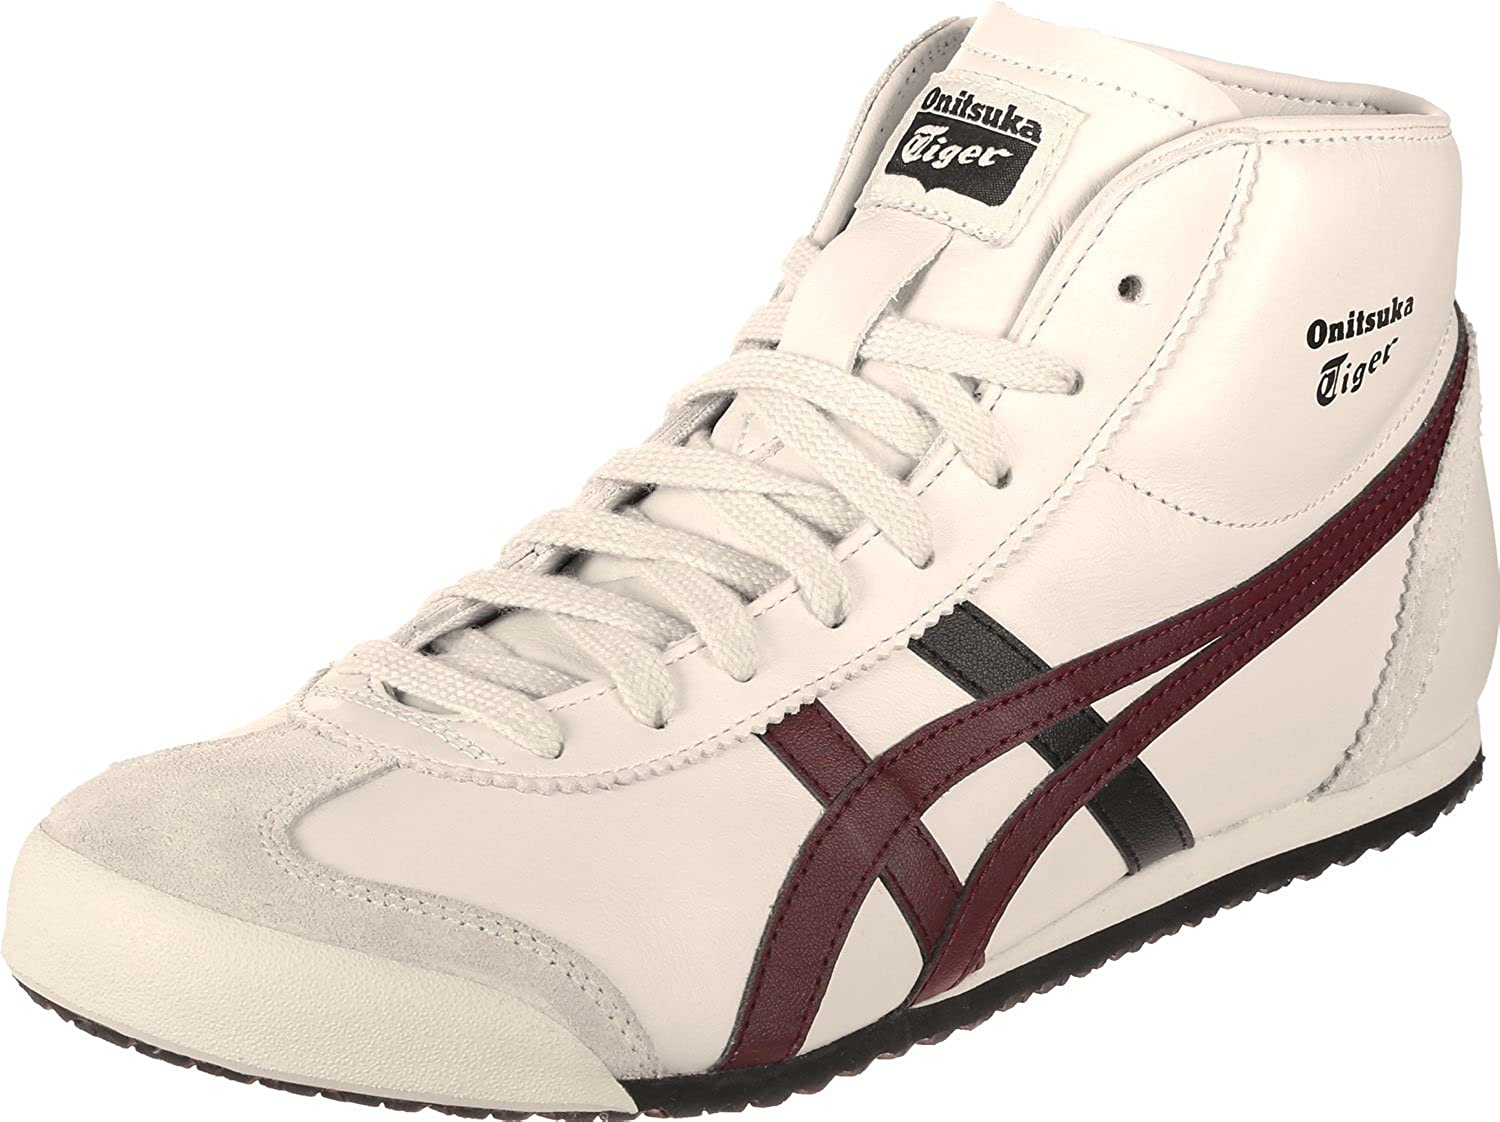 Onitsuka Tiger Mexico Mid Runner Schuhe